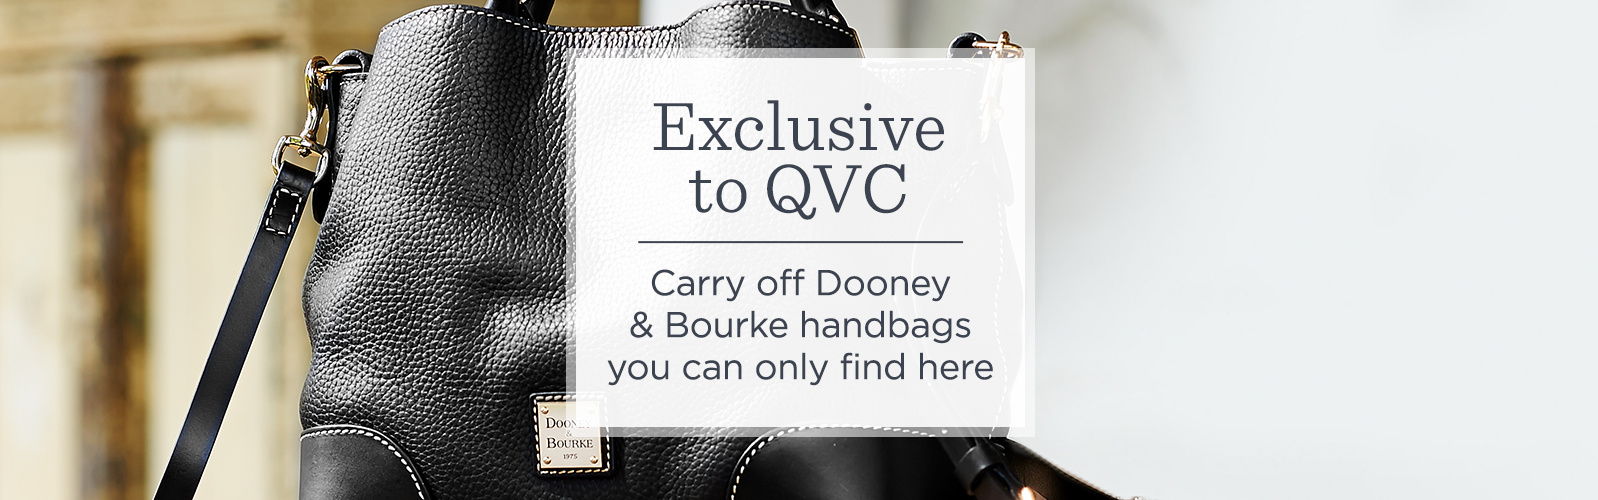 Exclusive to QVC  Carry off Dooney and Bourke handbags you can only find here